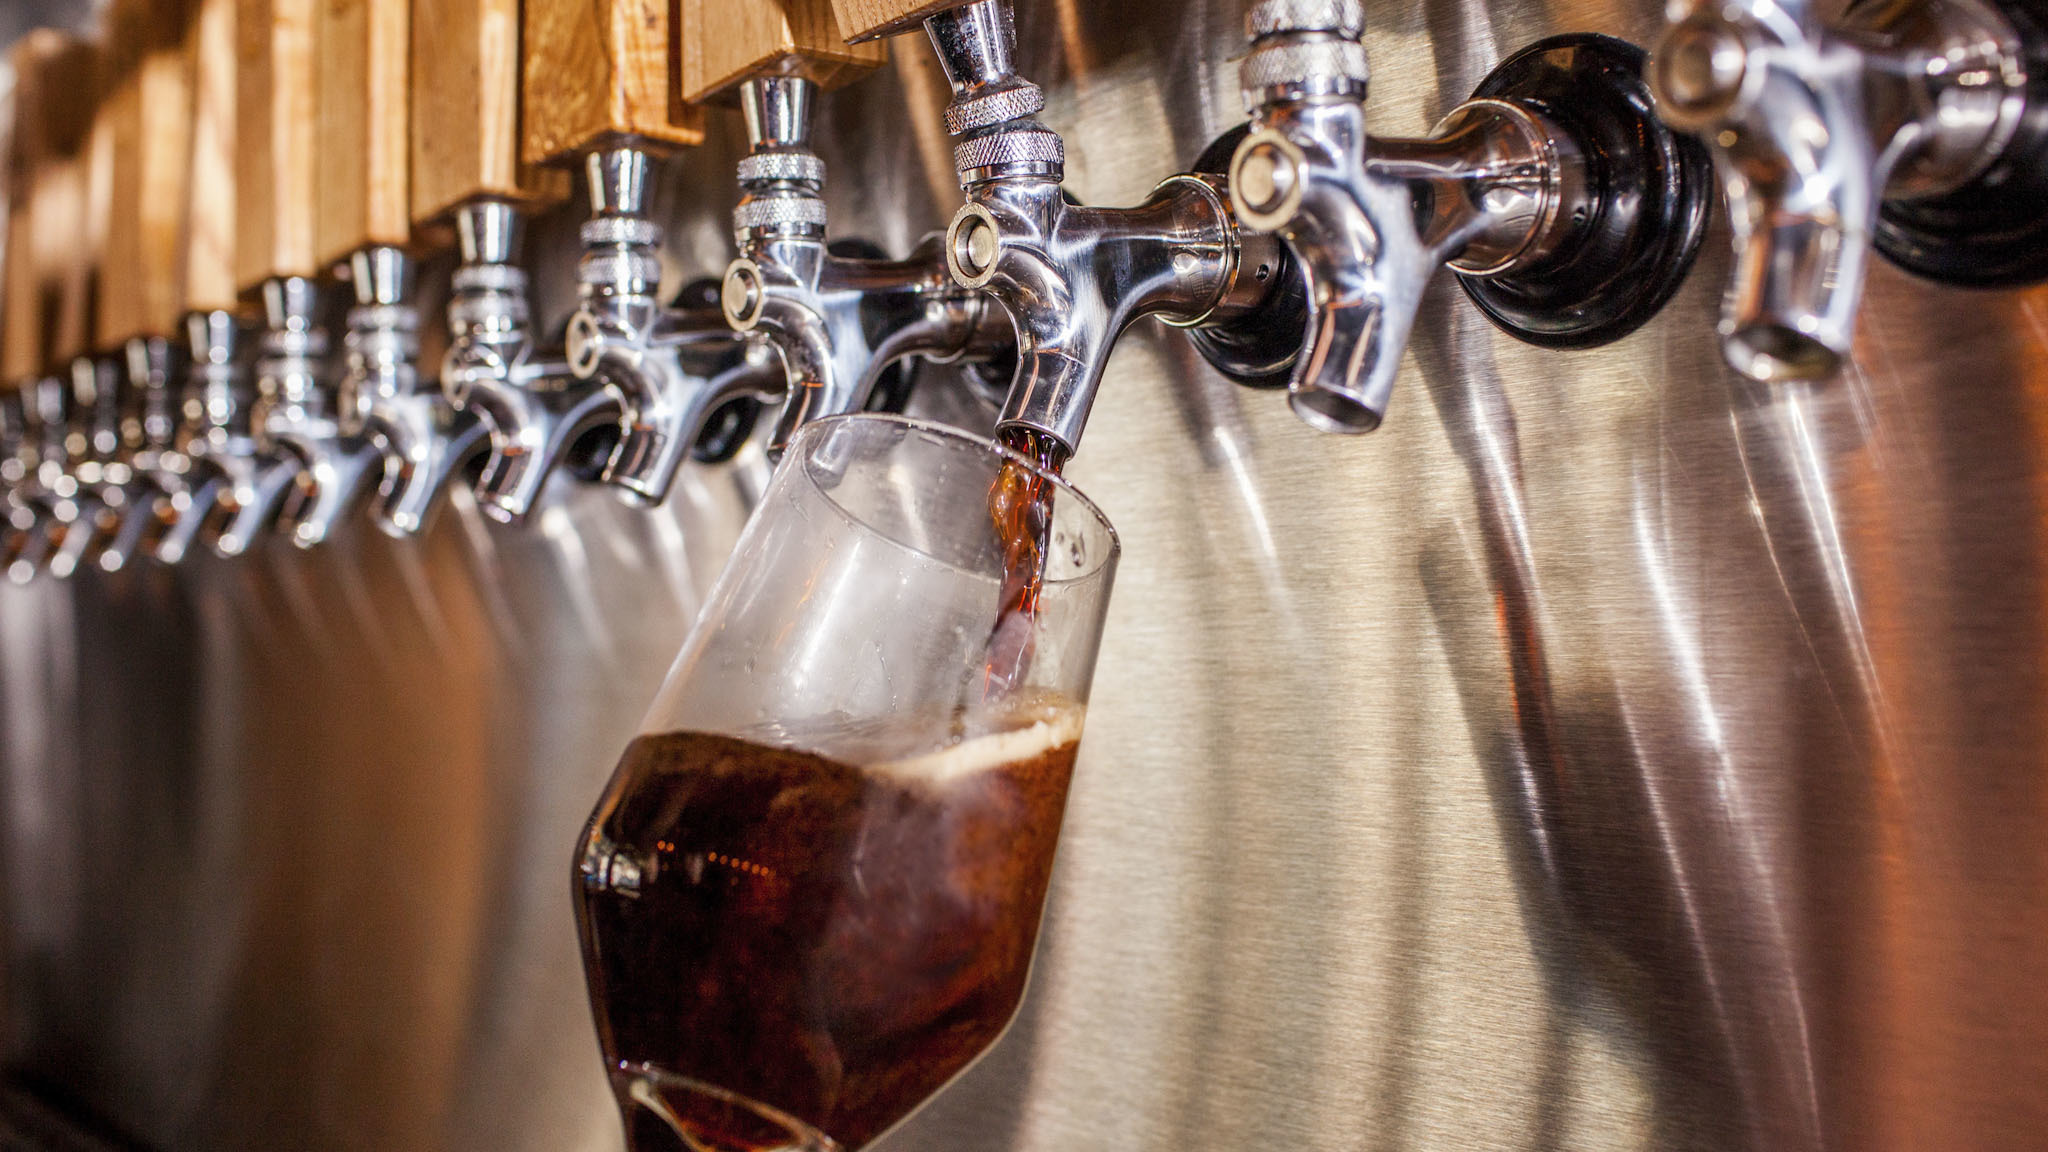 Festival of Barrel Aged Beers